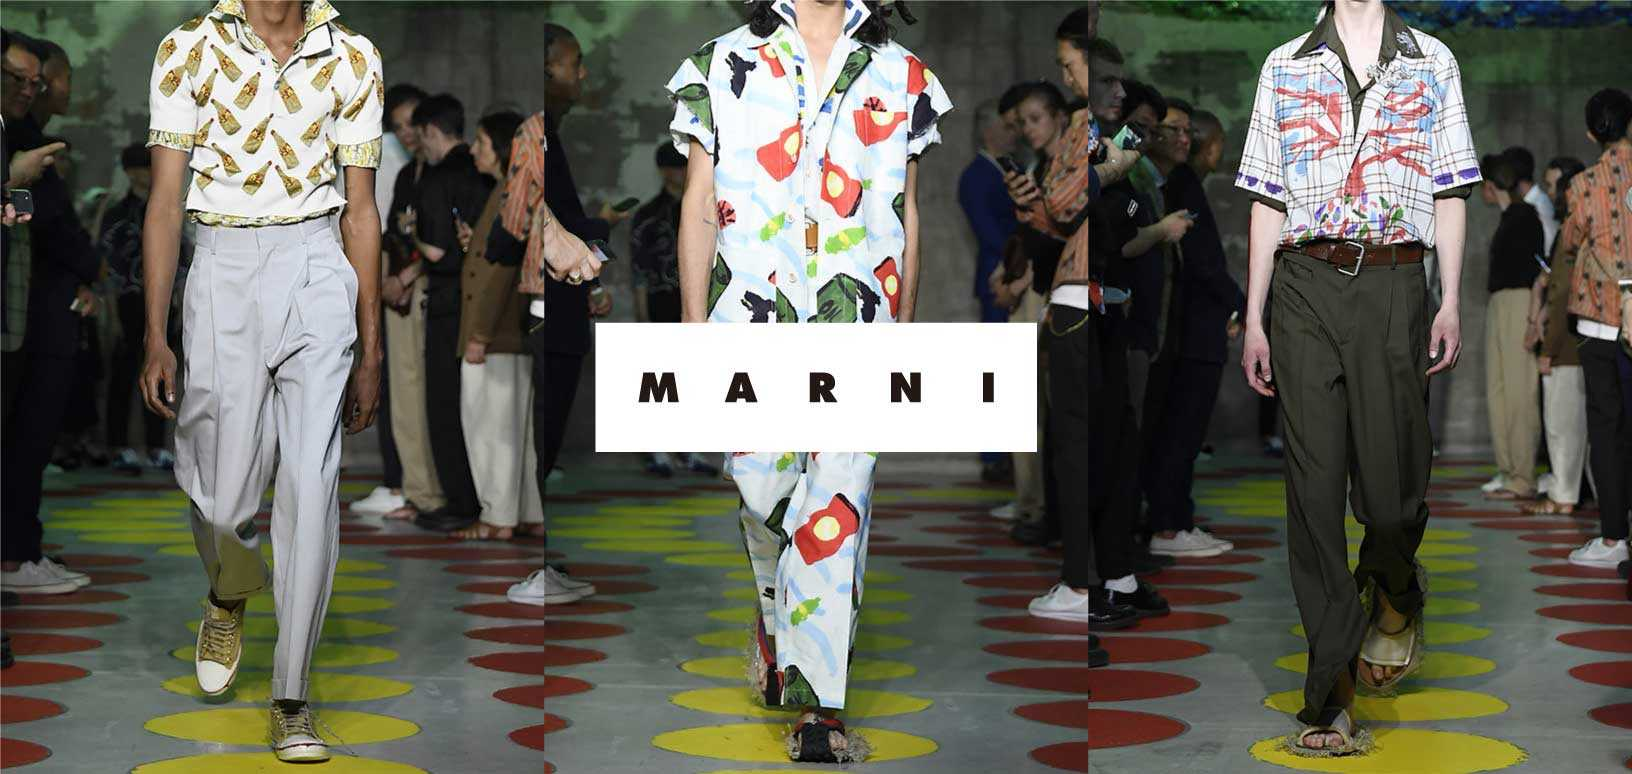 MARNI POP-UP STORE